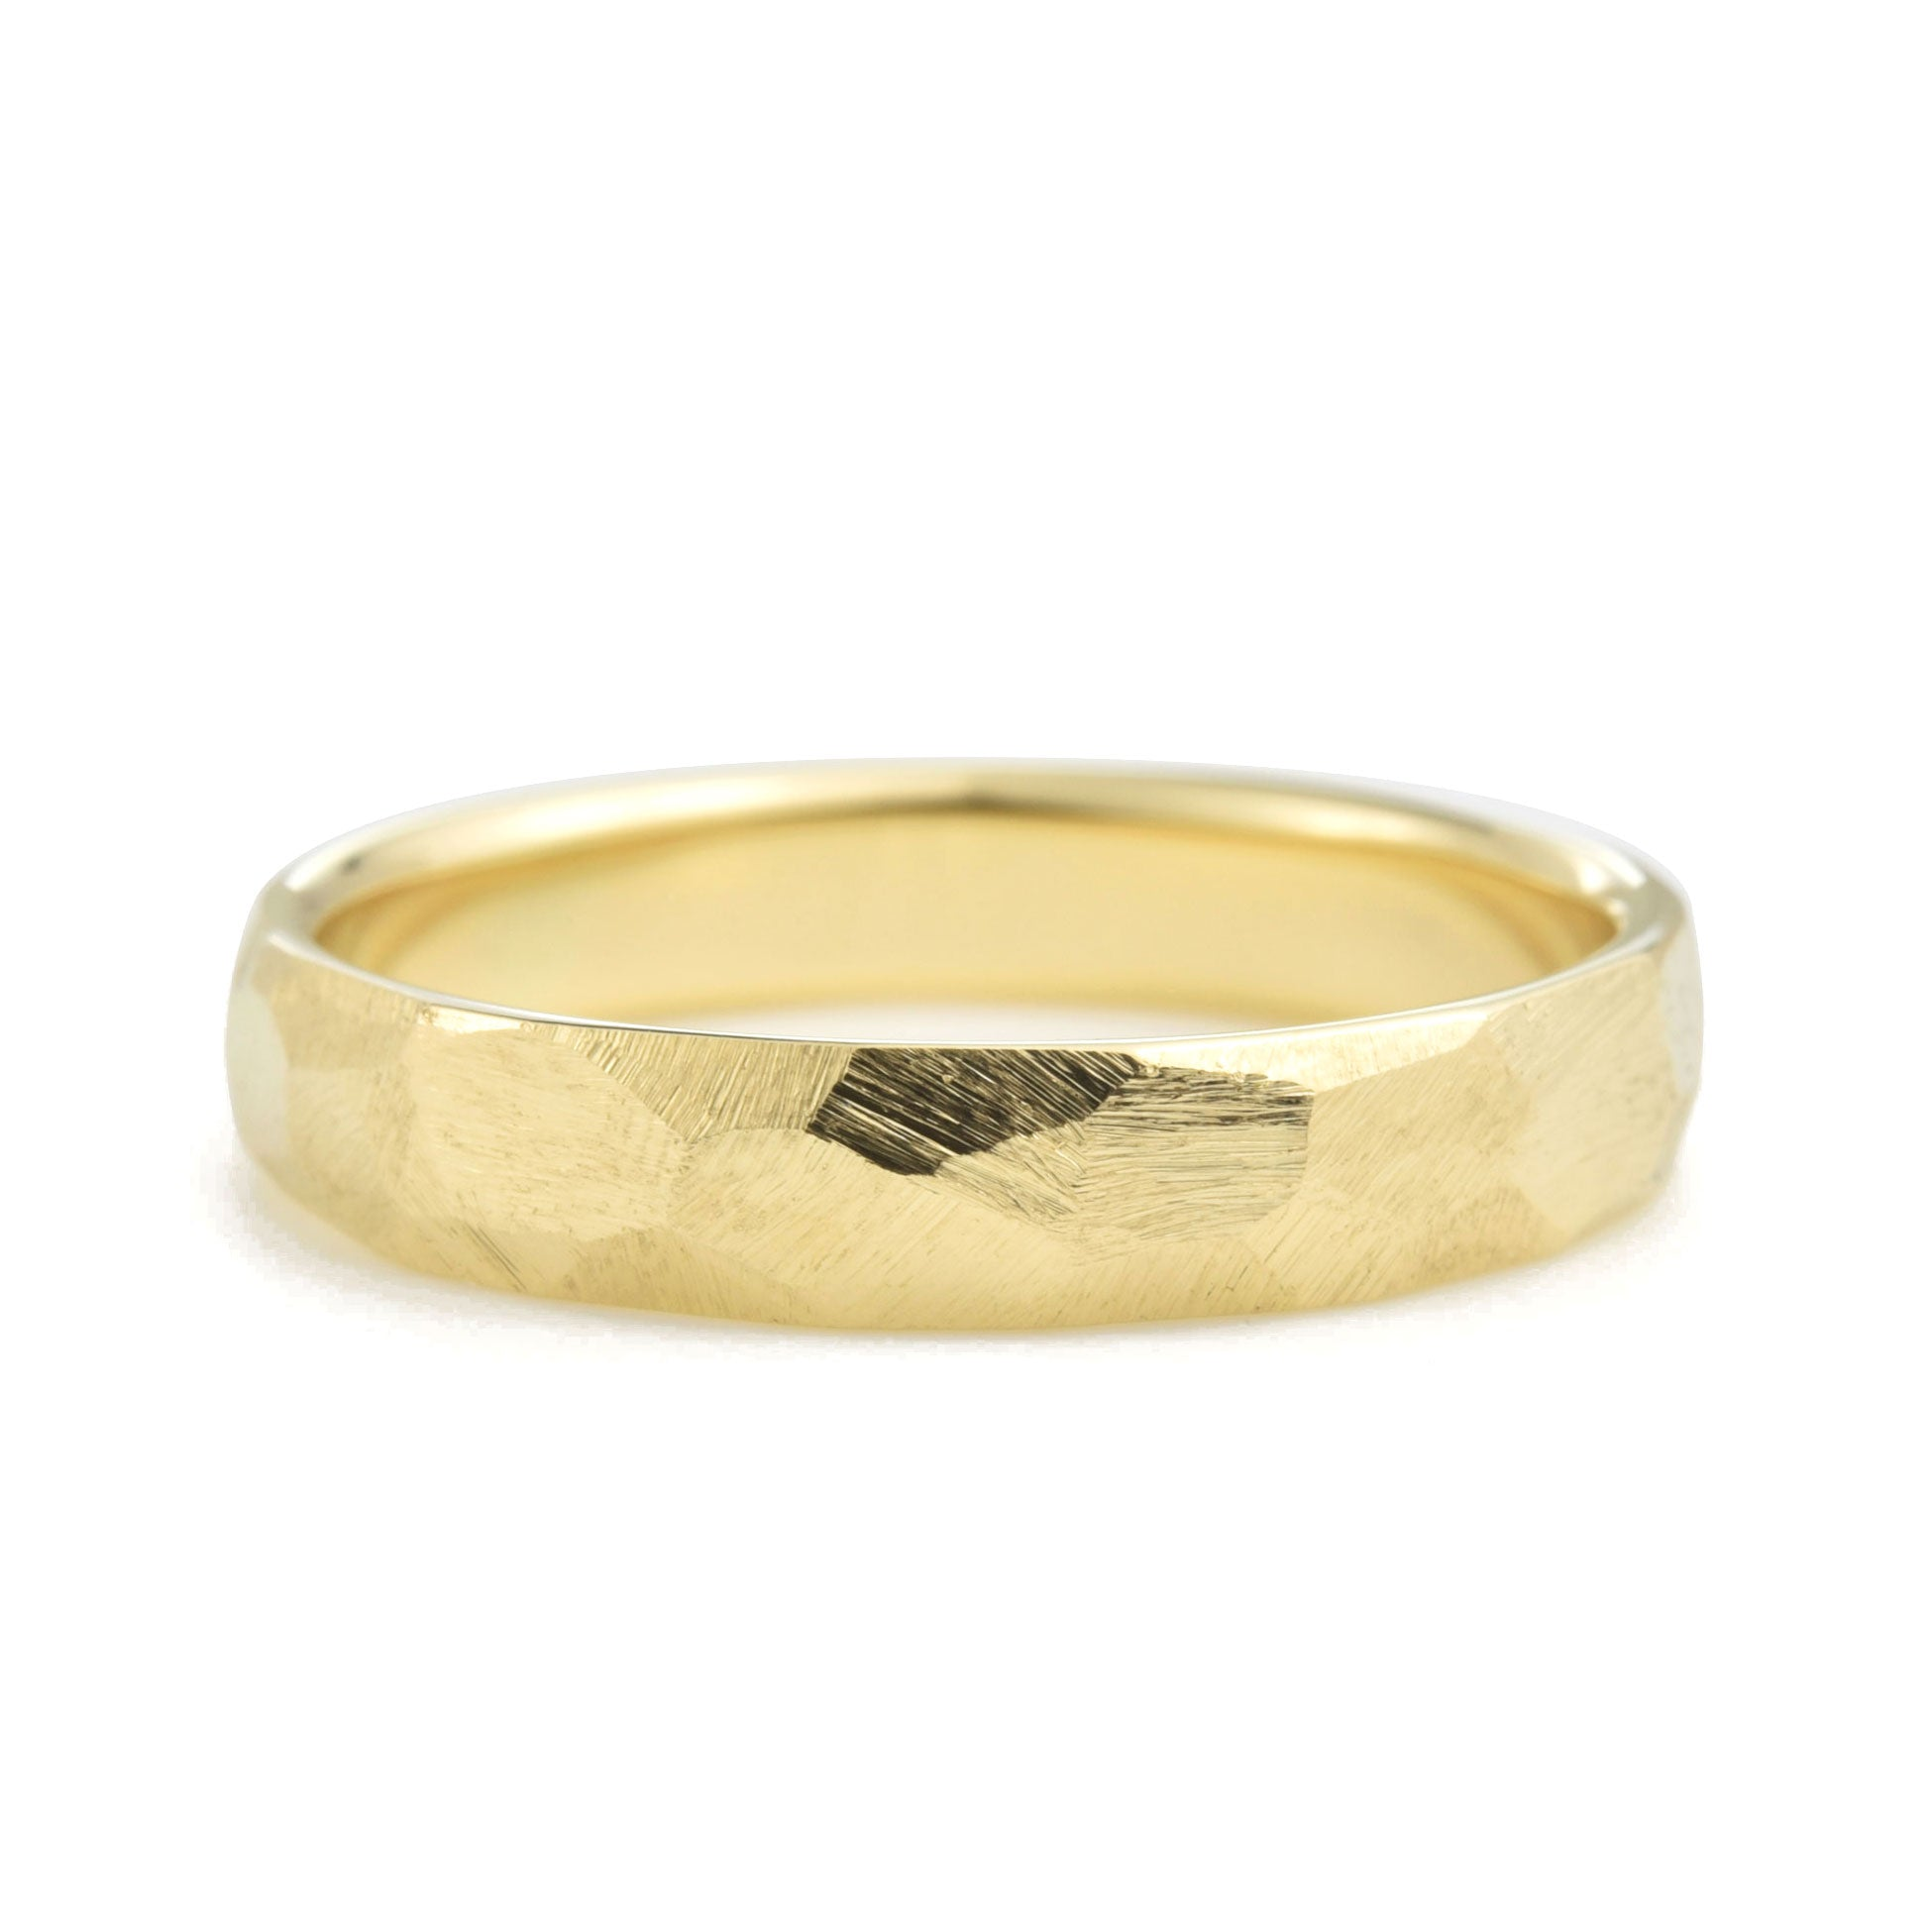 4mm Geo Wedding Band in yellow gold